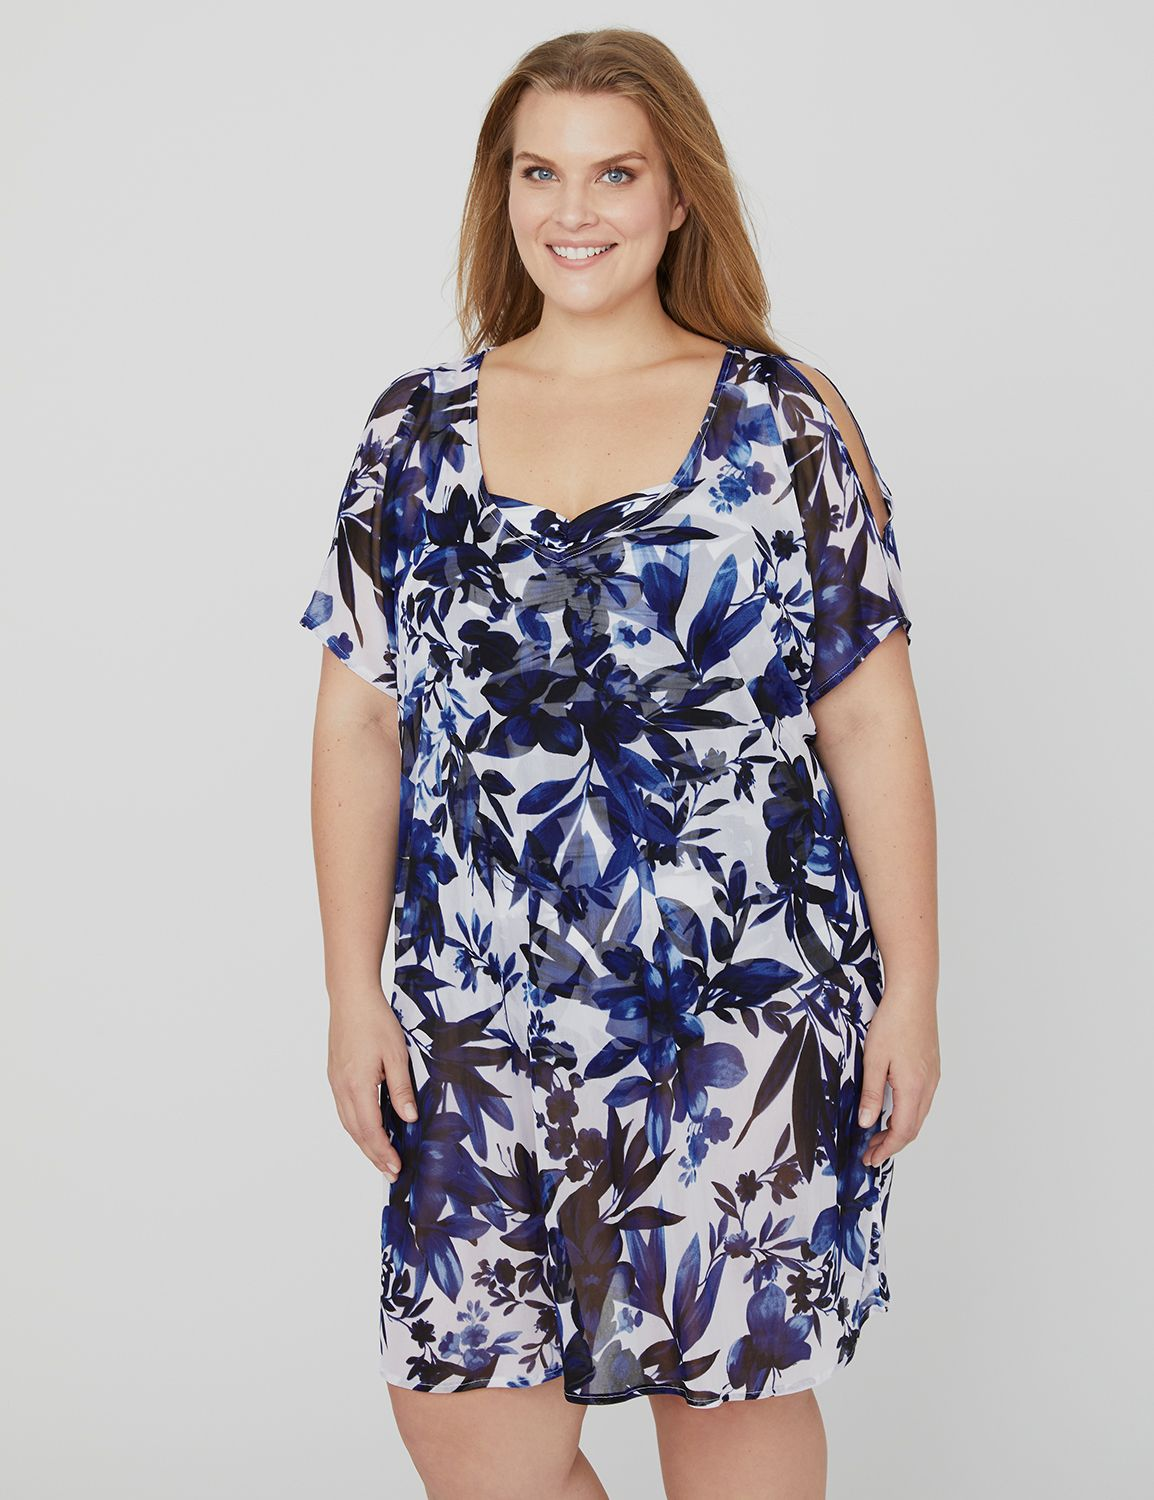 Lakeside Floral Sheer Cover-Up 1088510-Printed Mesh Cover-up MP-300096389